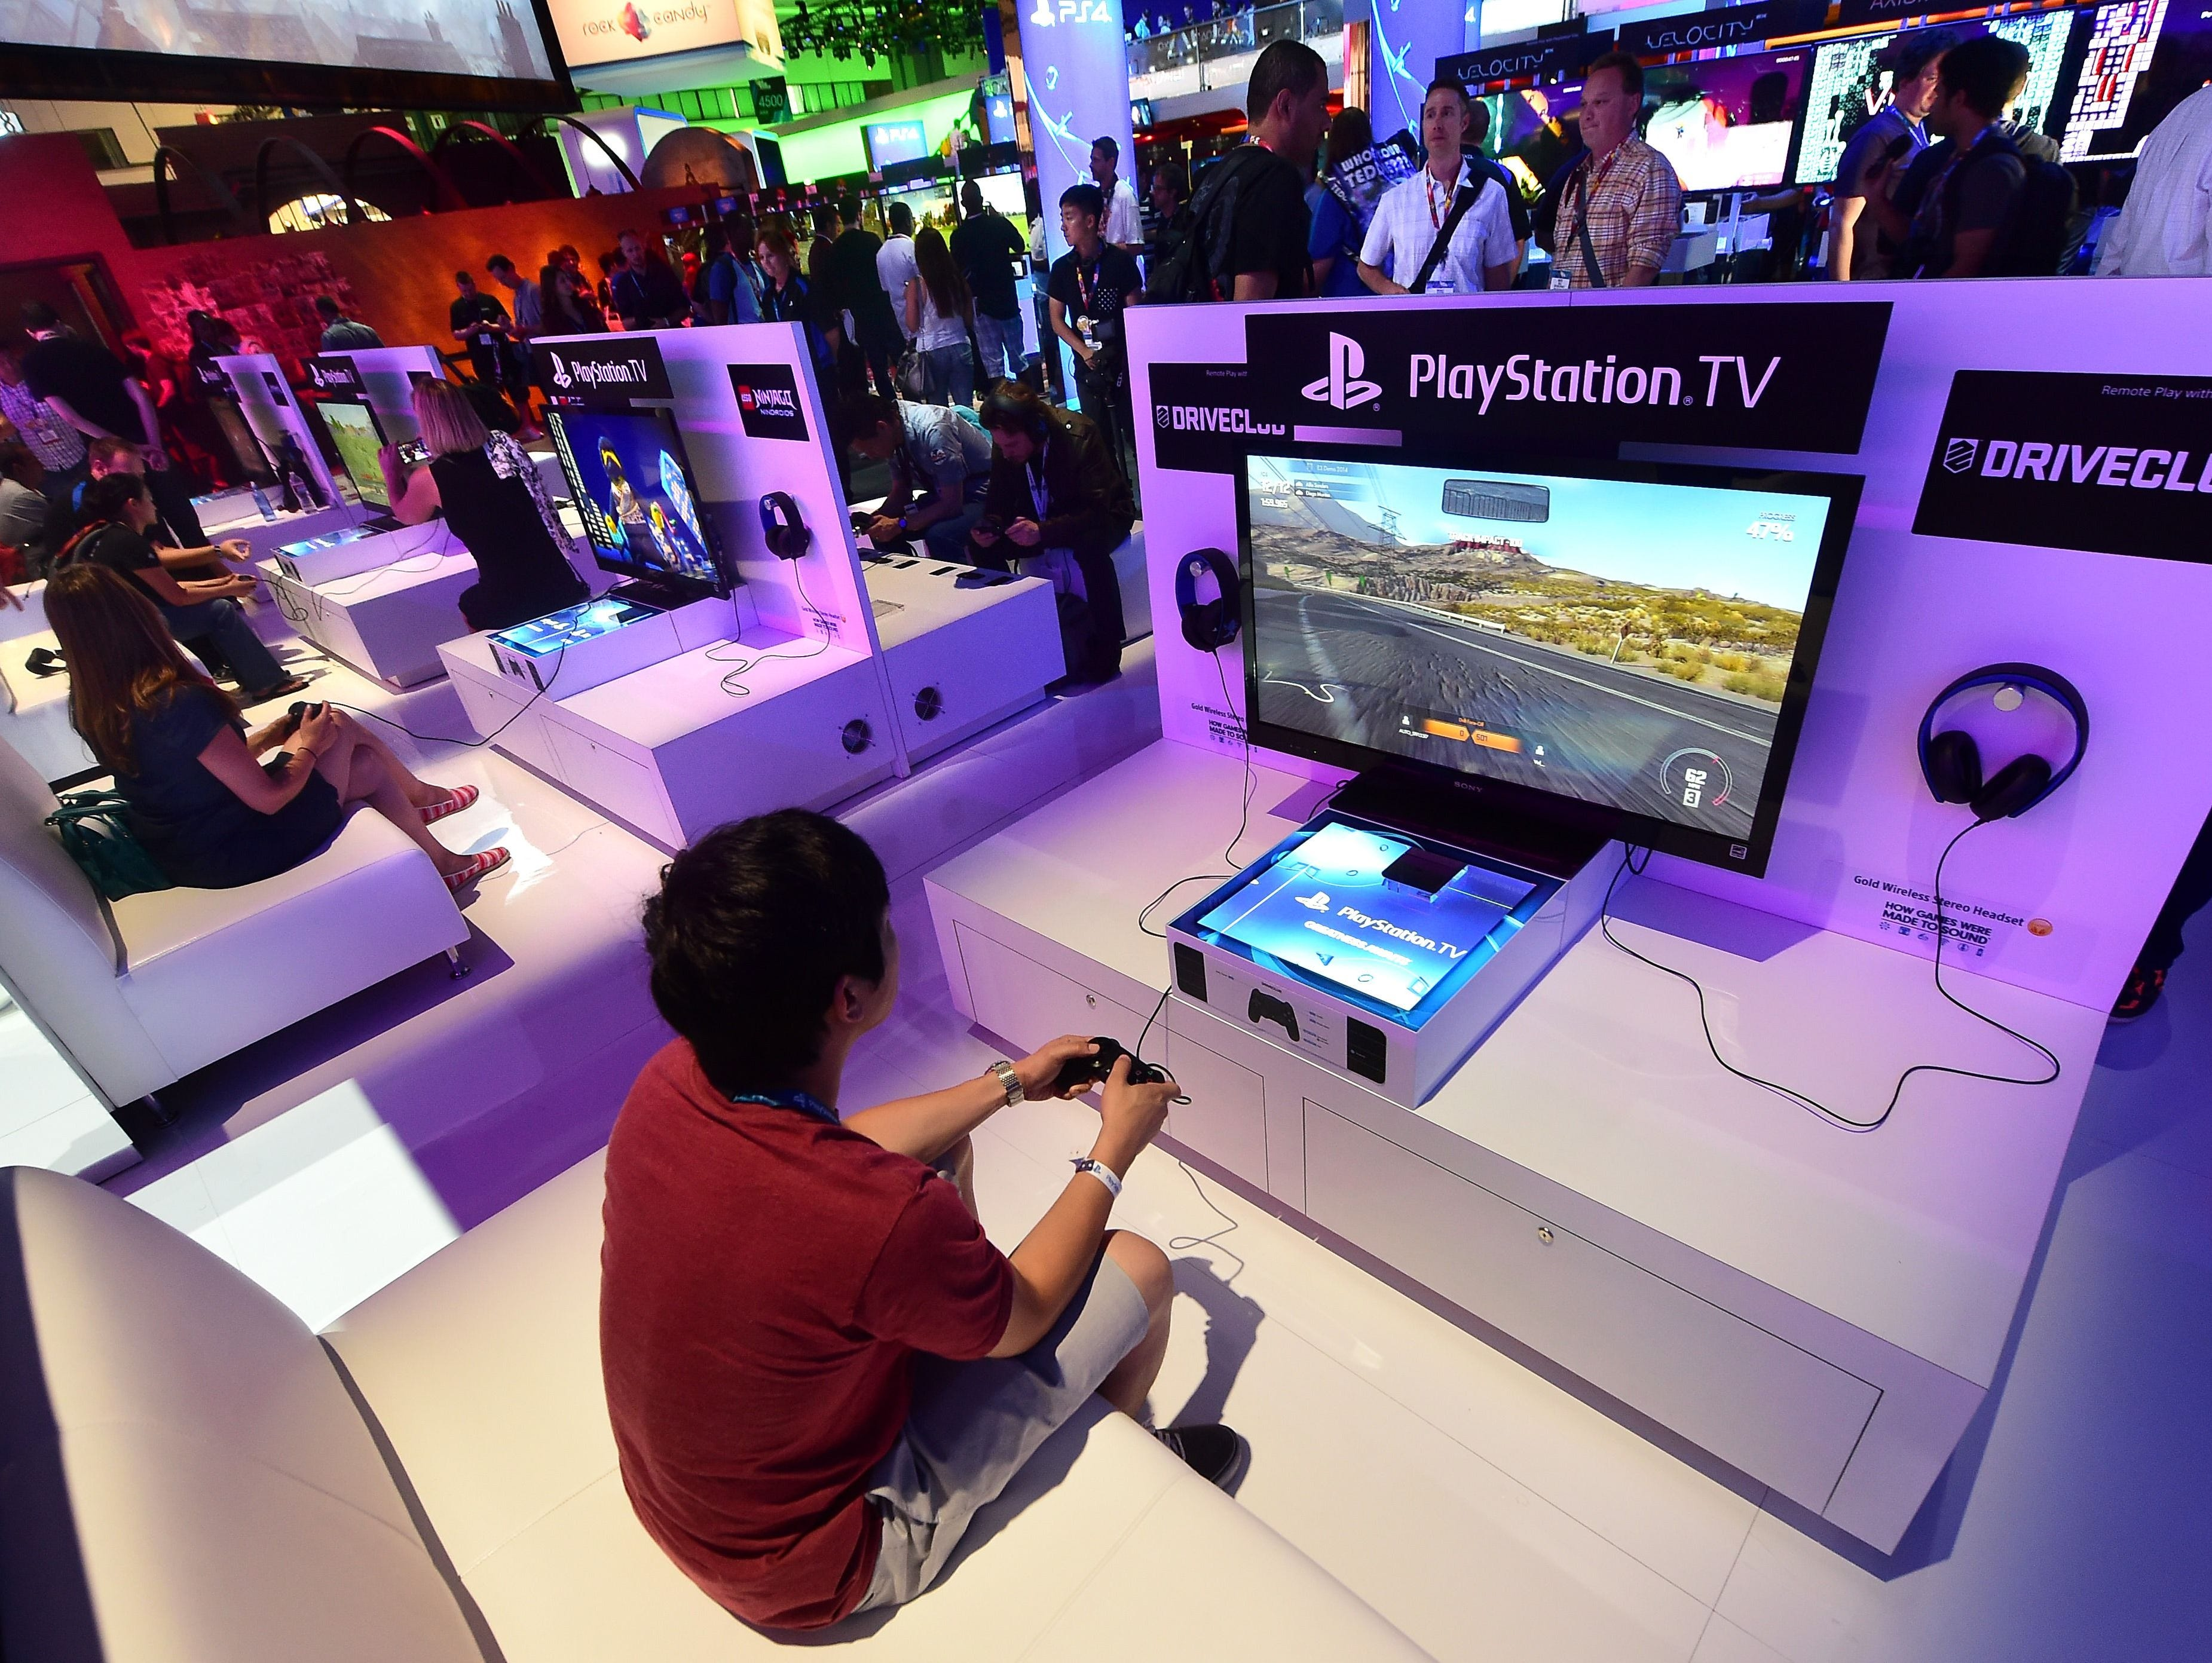 A file photo taken on June 10, 2014 shows people testing the new Playstation TV consoles at the annual E3 video game extravaganza in Los Angeles, Calif.